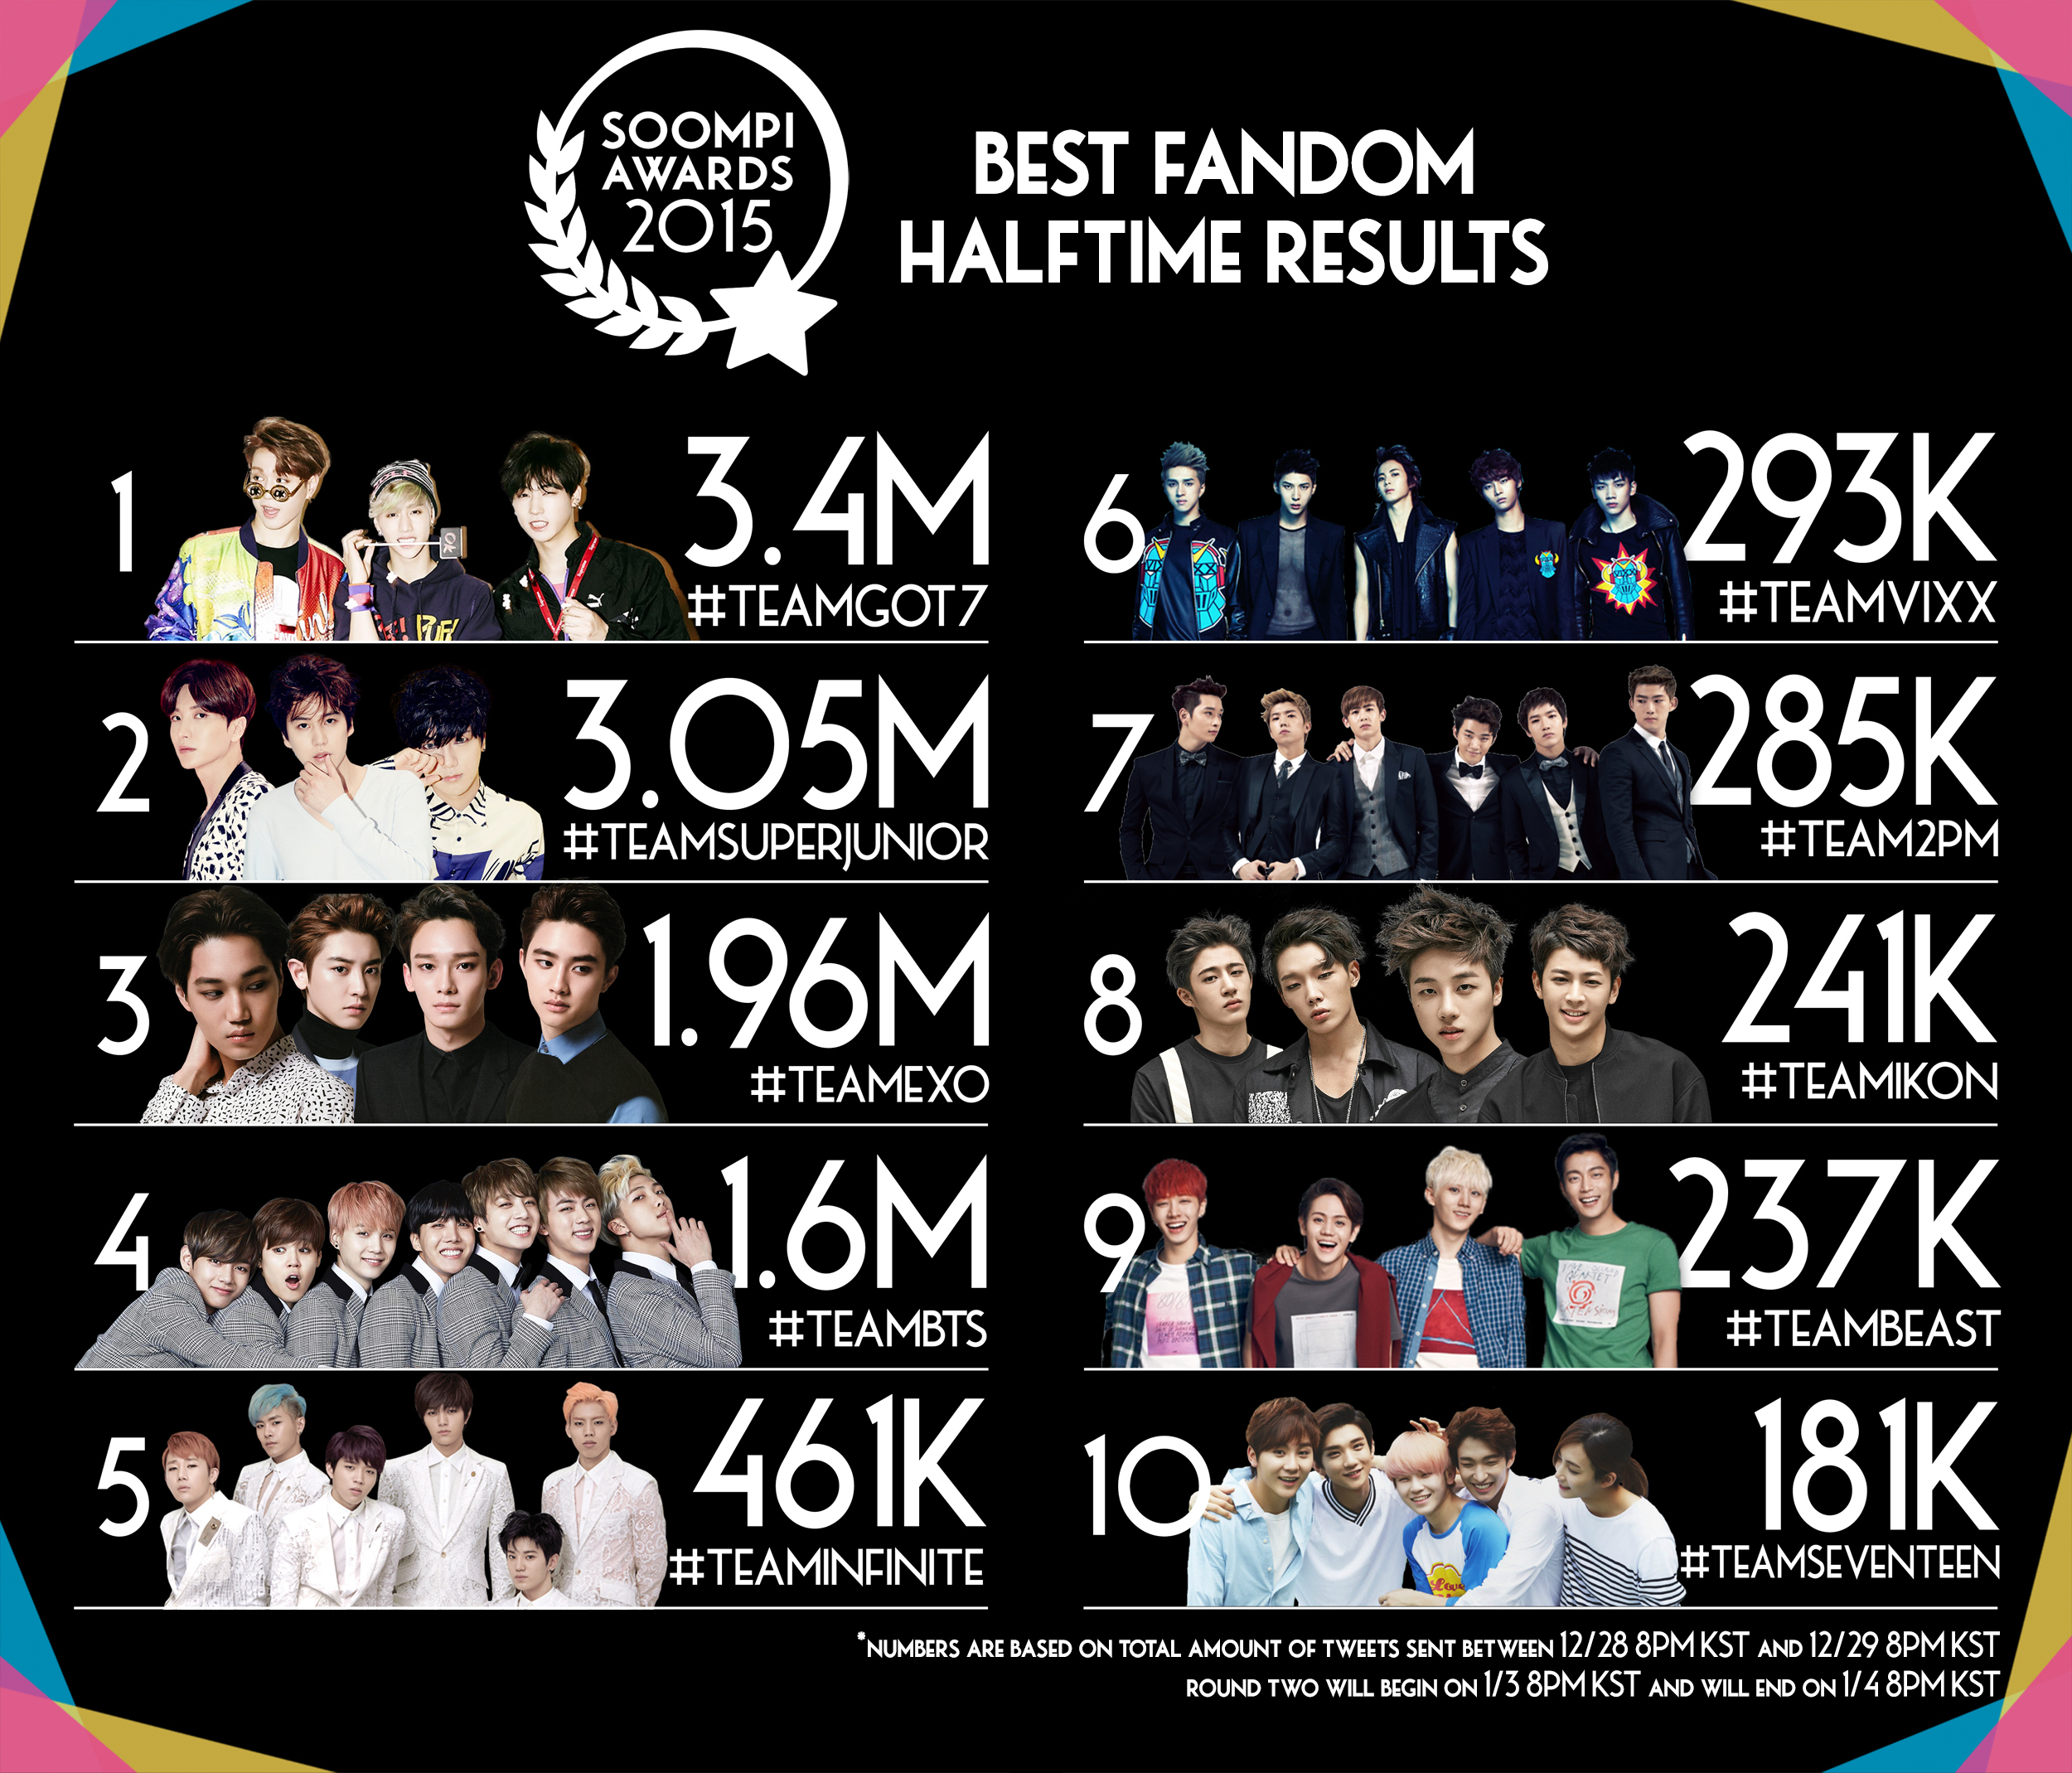 Soompi Awards 2015: The Halftime Results | Soompi